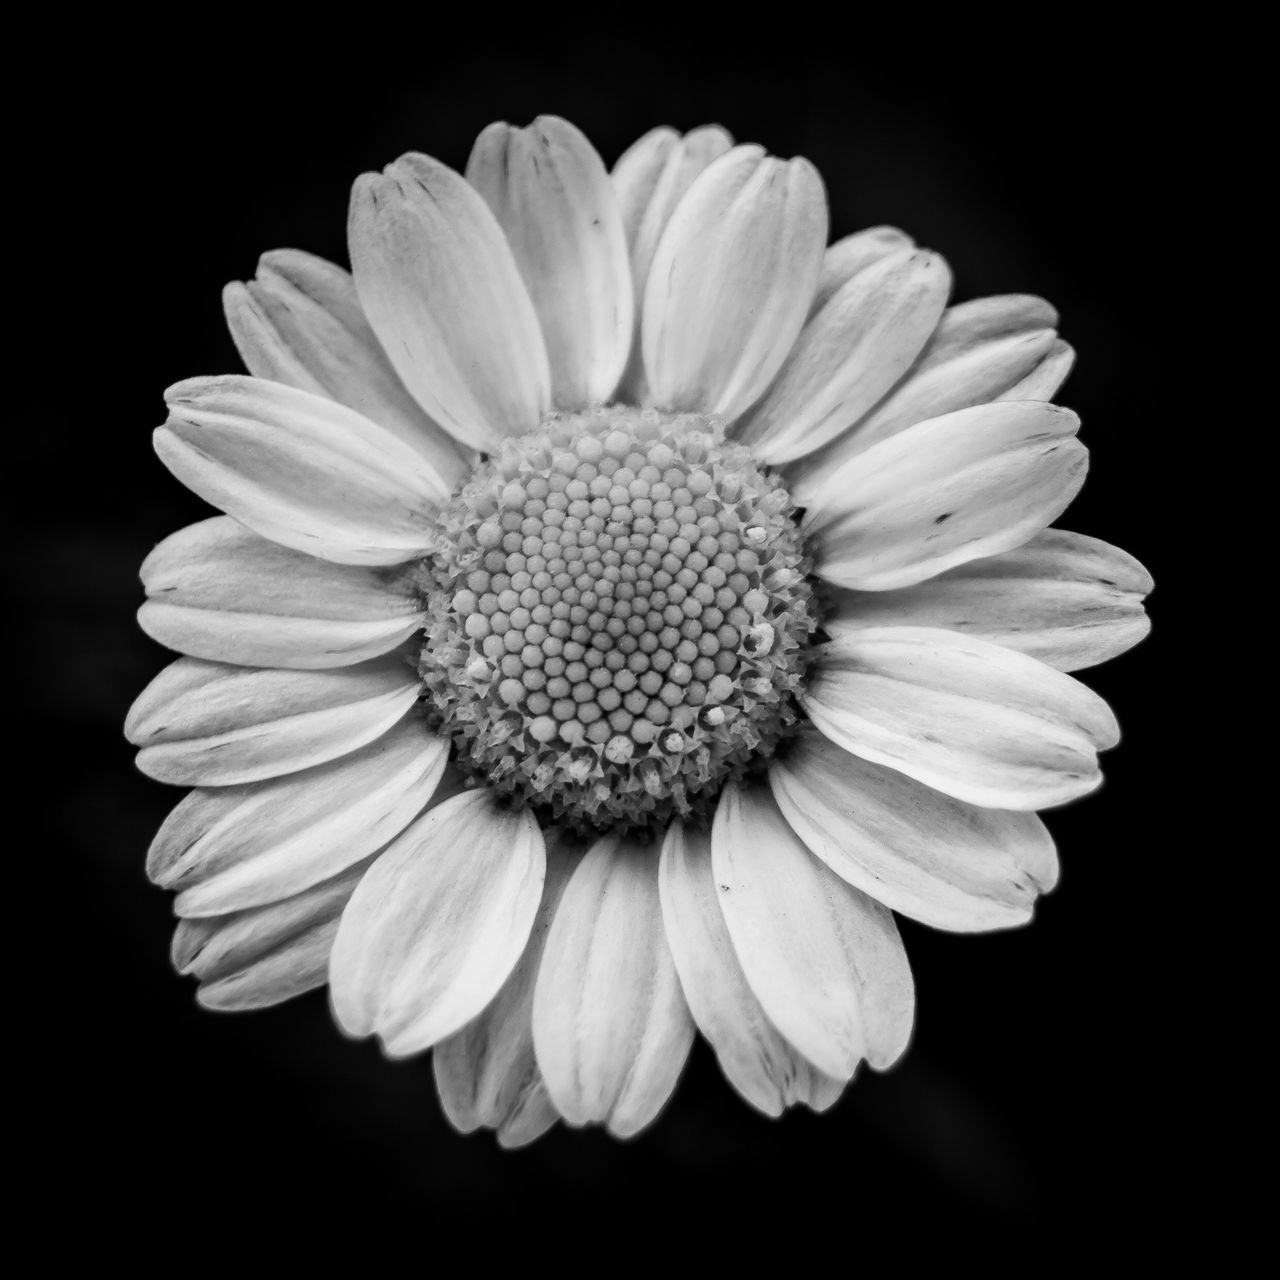 flowering plant, flower, vulnerability, petal, fragility, freshness, flower head, black background, inflorescence, studio shot, close-up, beauty in nature, plant, growth, pollen, nature, indoors, no people, daisy, springtime